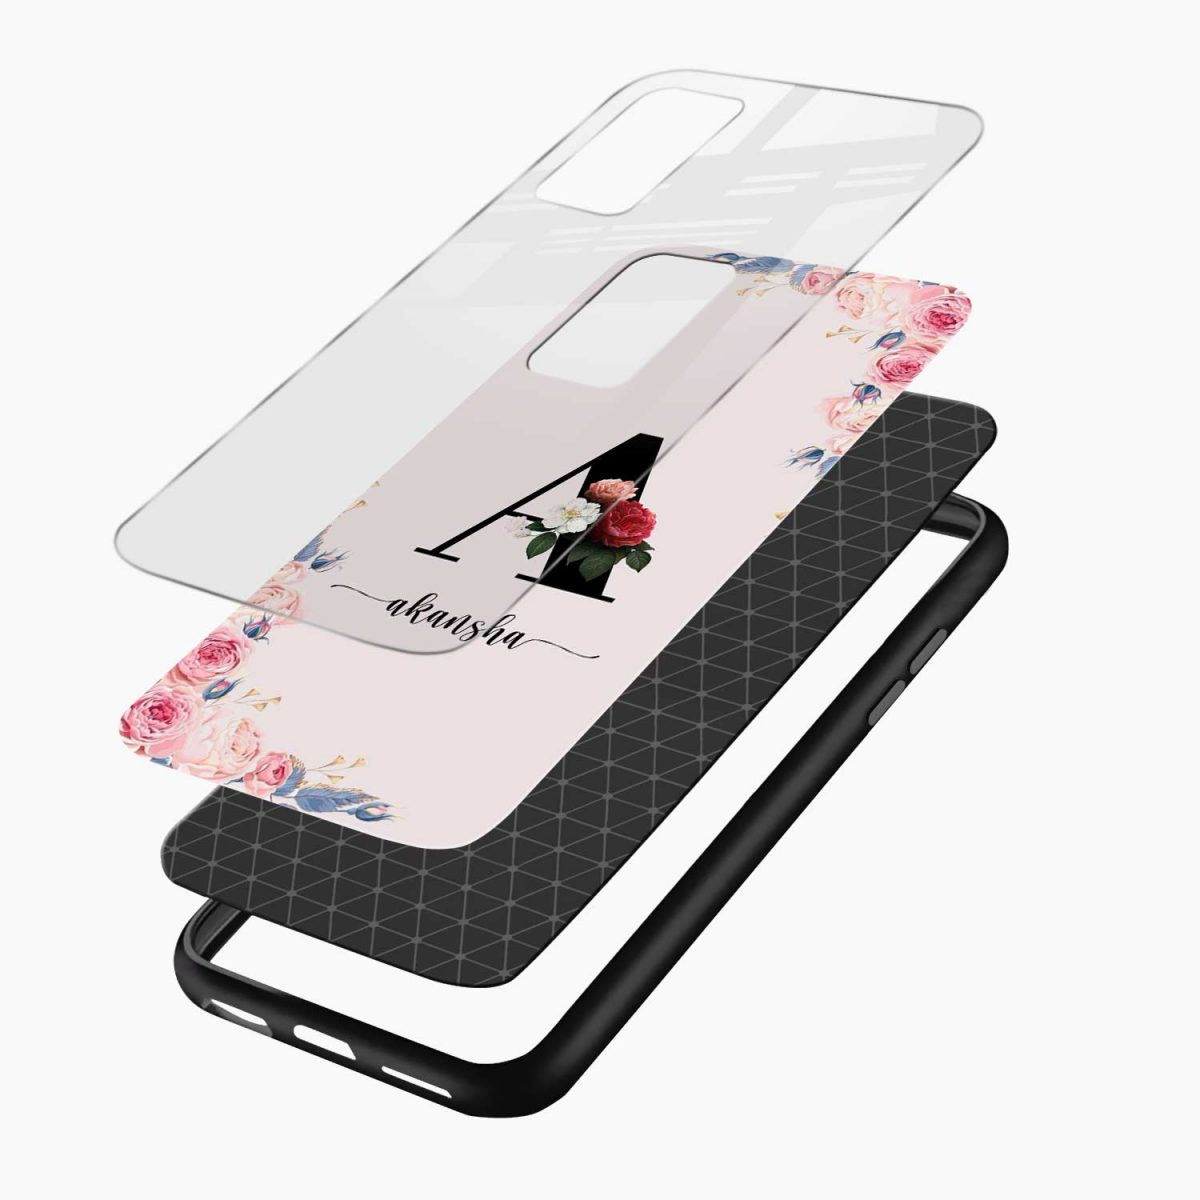 floral name personalised layers view vivo v19 back cover